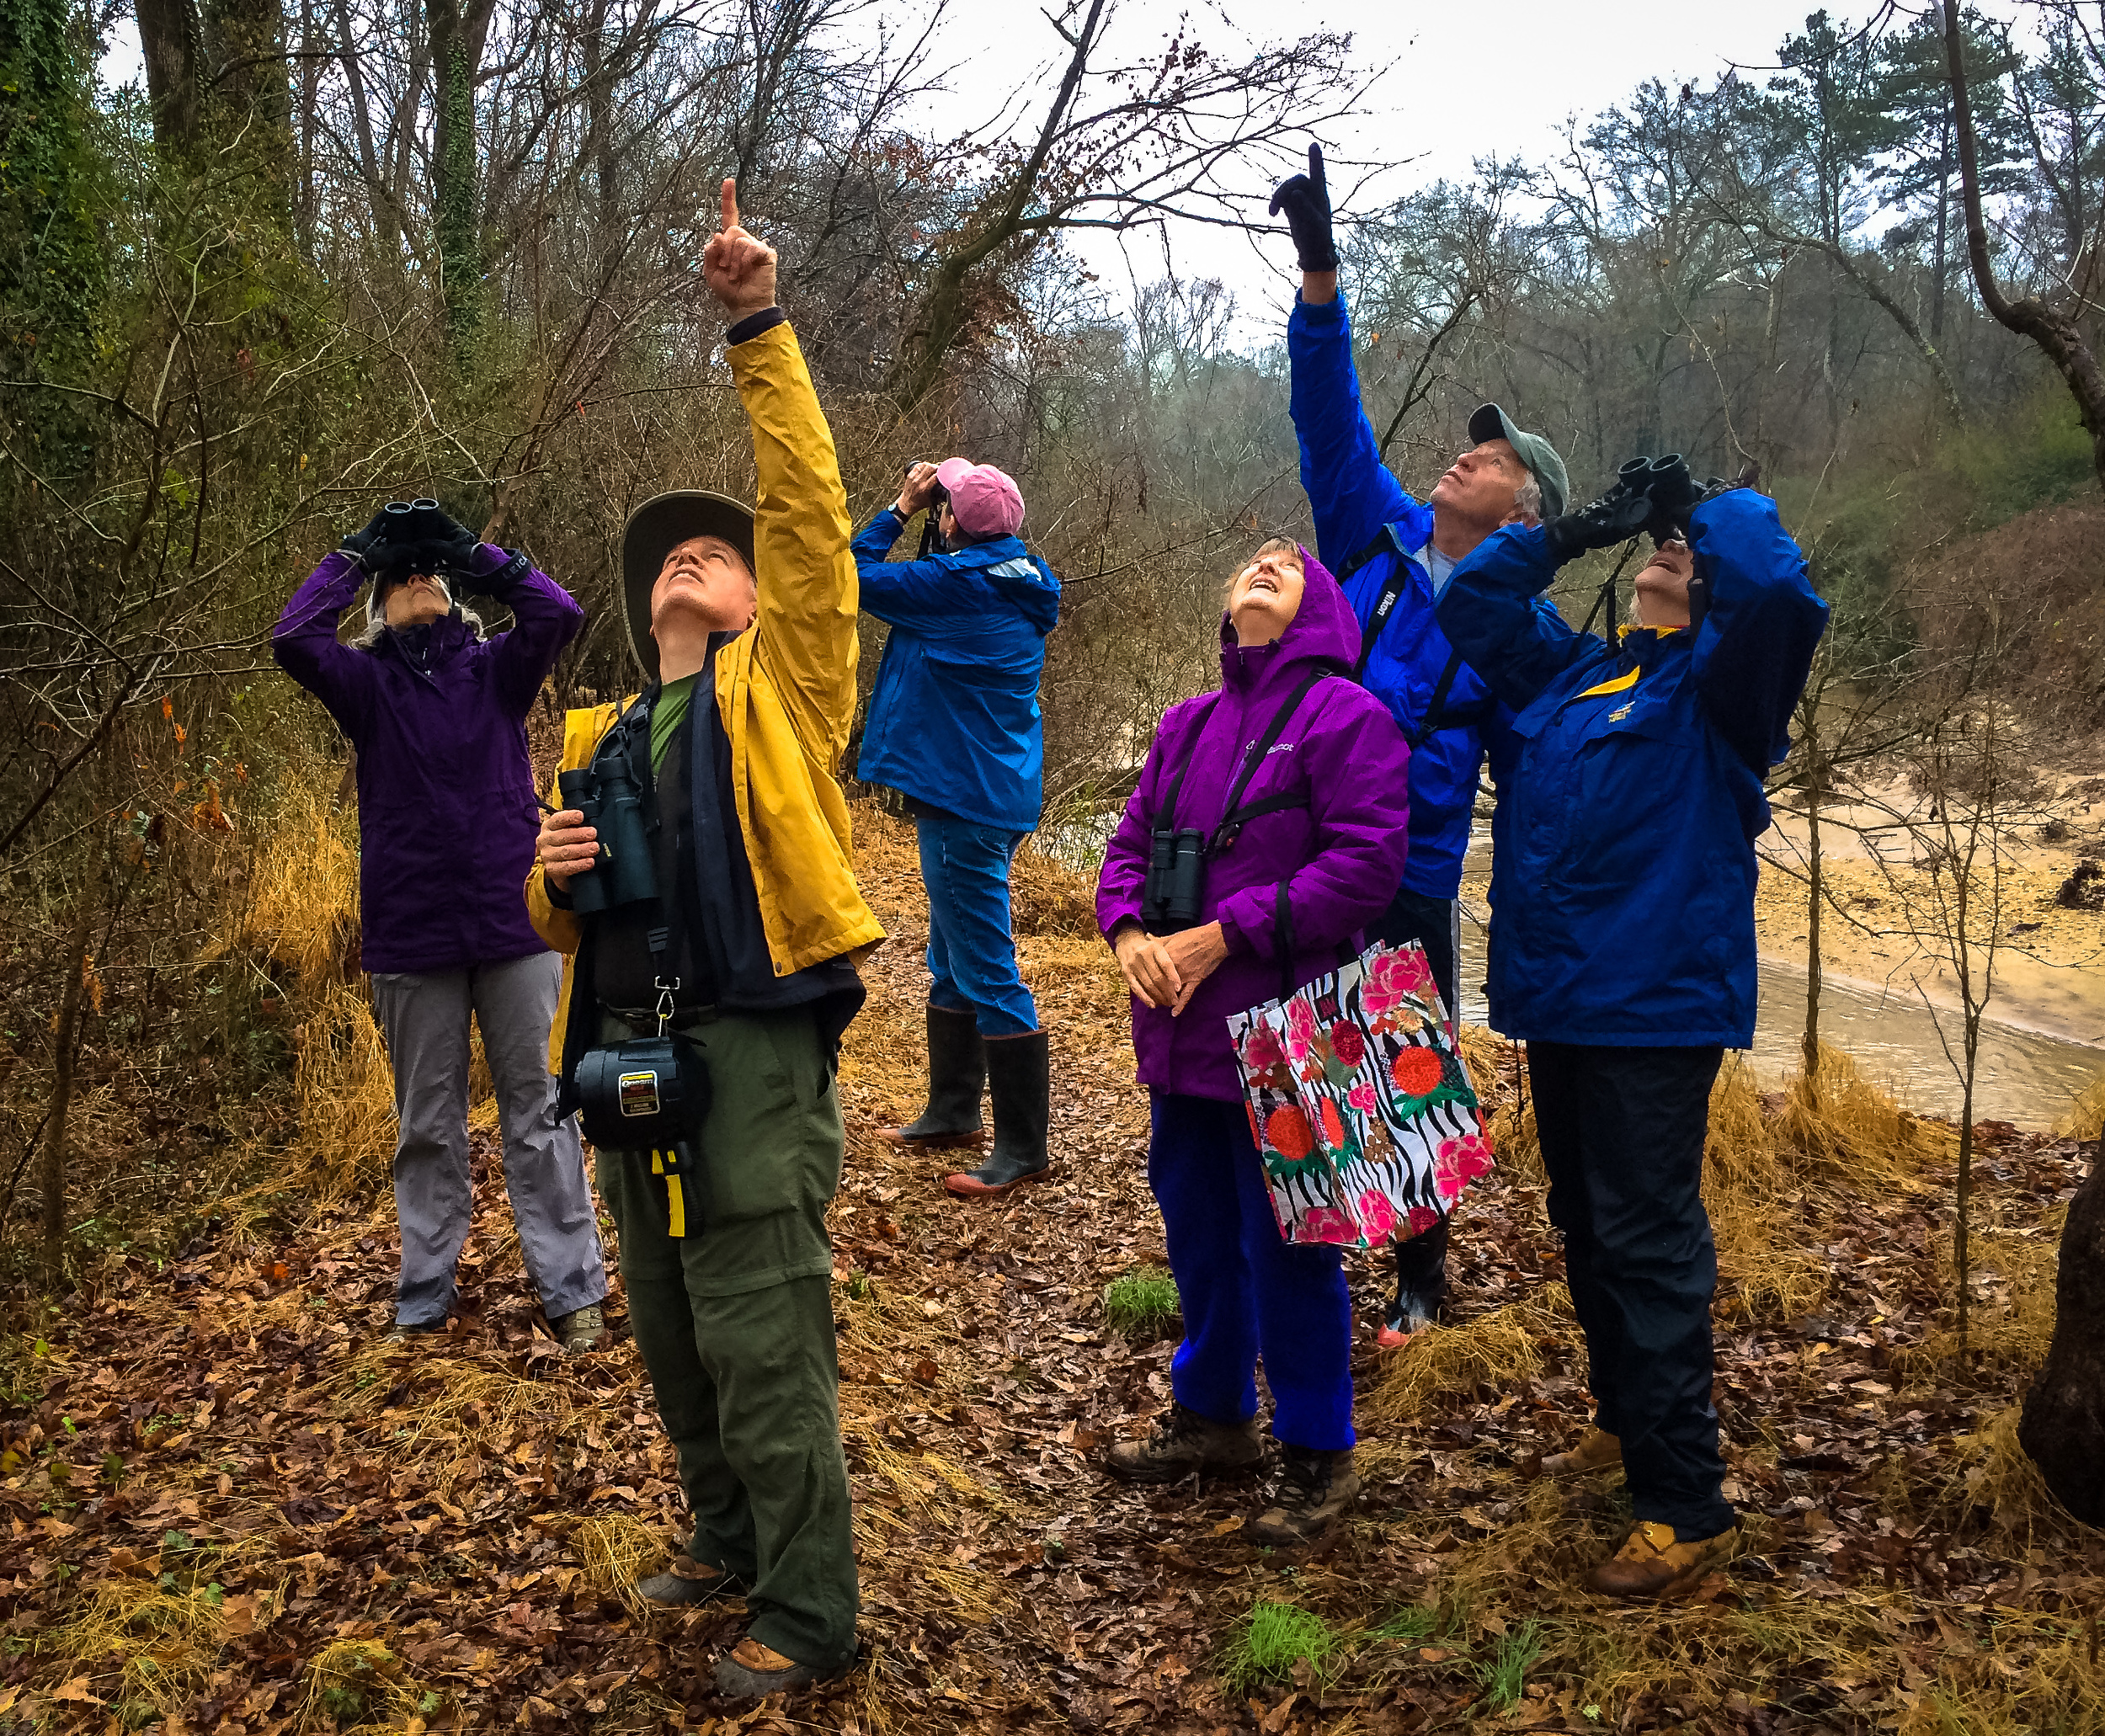 Spotting something special on the South Fork. From Left to Right: Ellen Miller, Eric Bowles, Teresa Mayes, Stella Wissner, John Mayes, Sally Sears